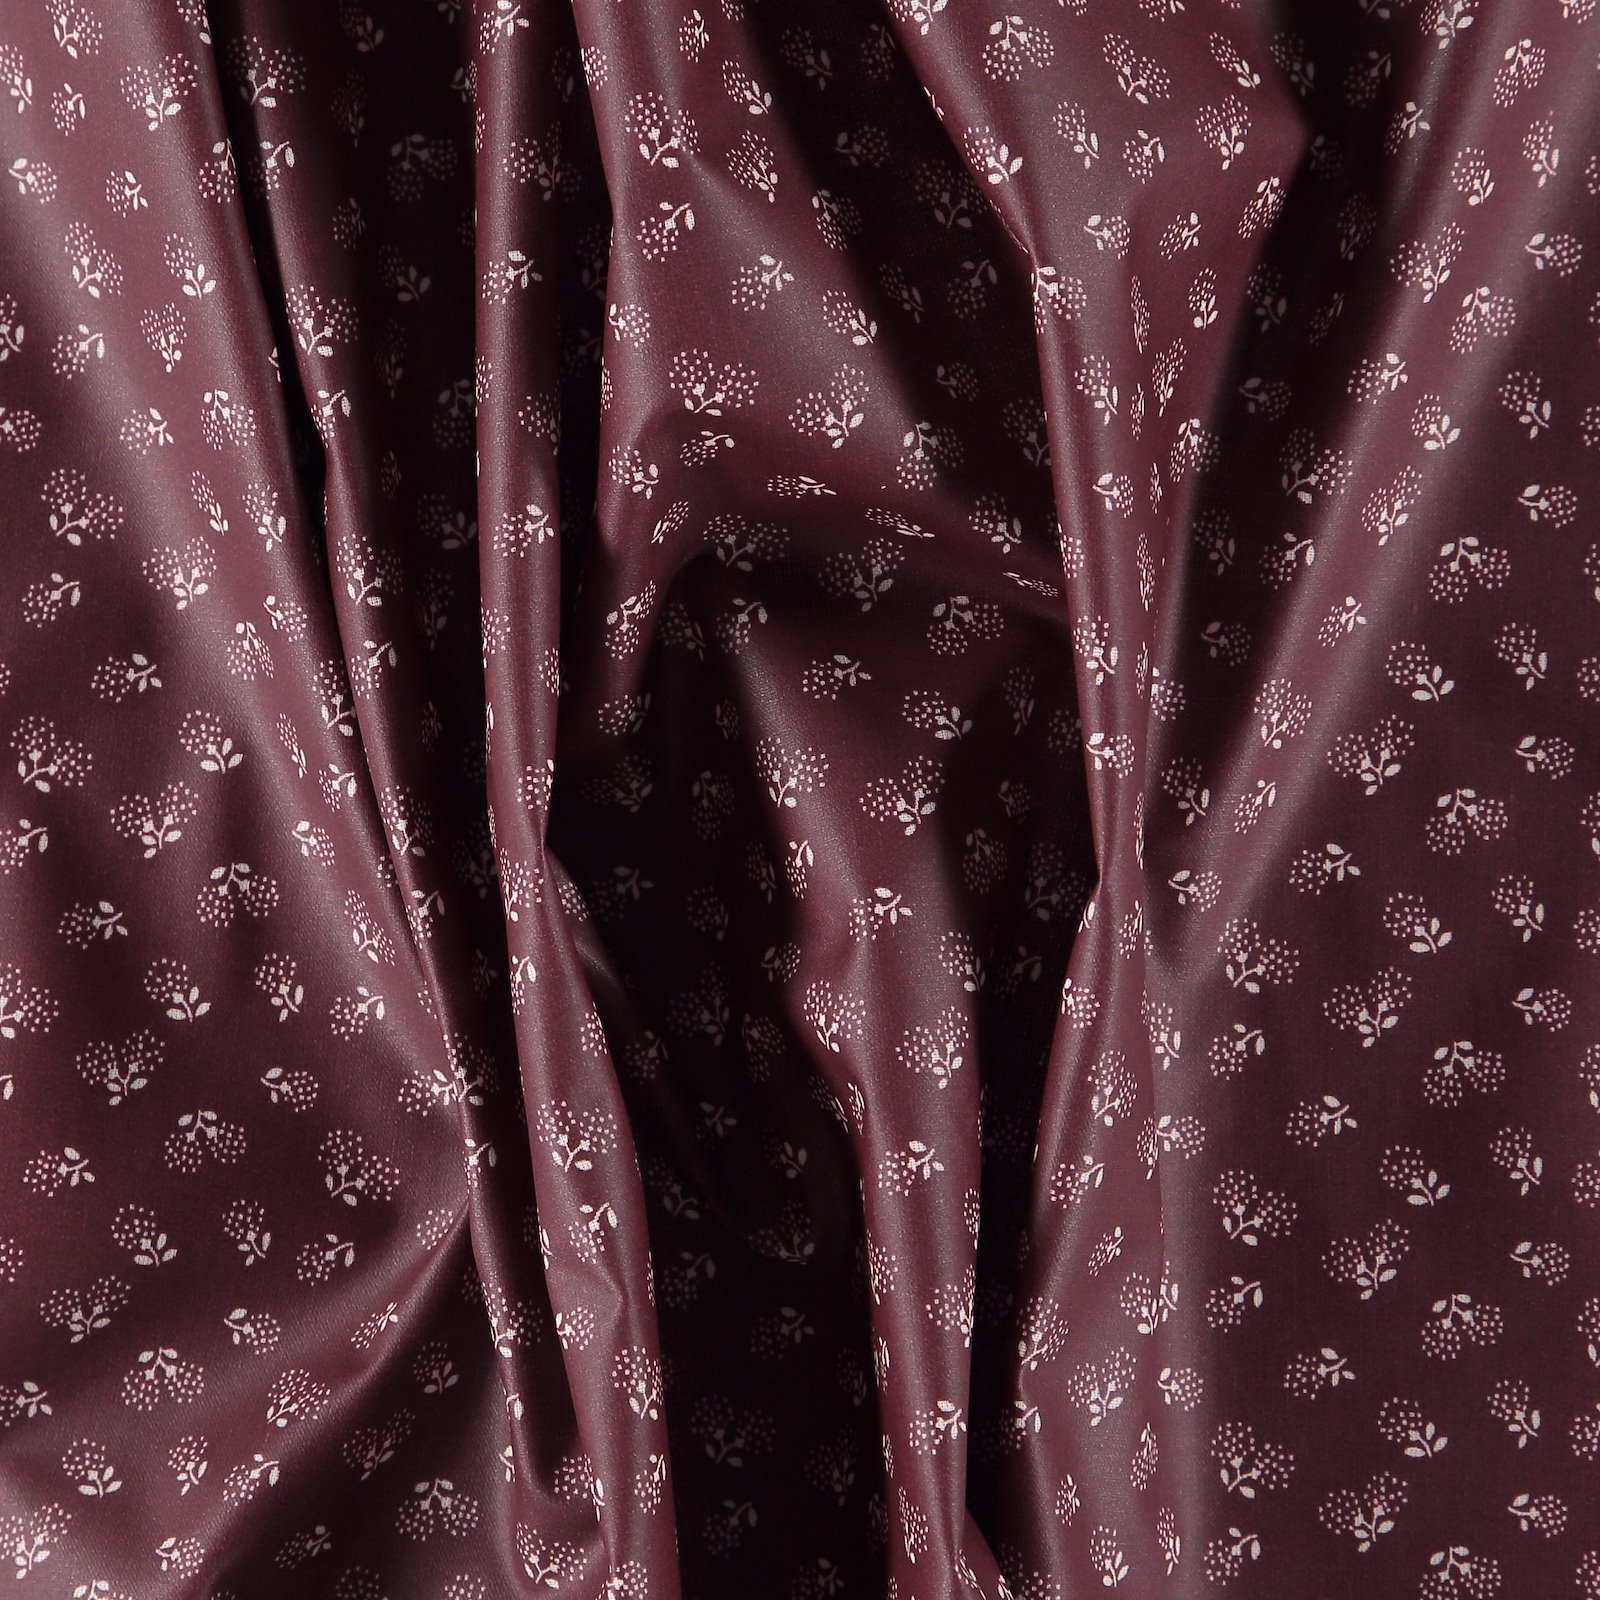 Woven oil cloth bordeaux with flowers 863692_pack